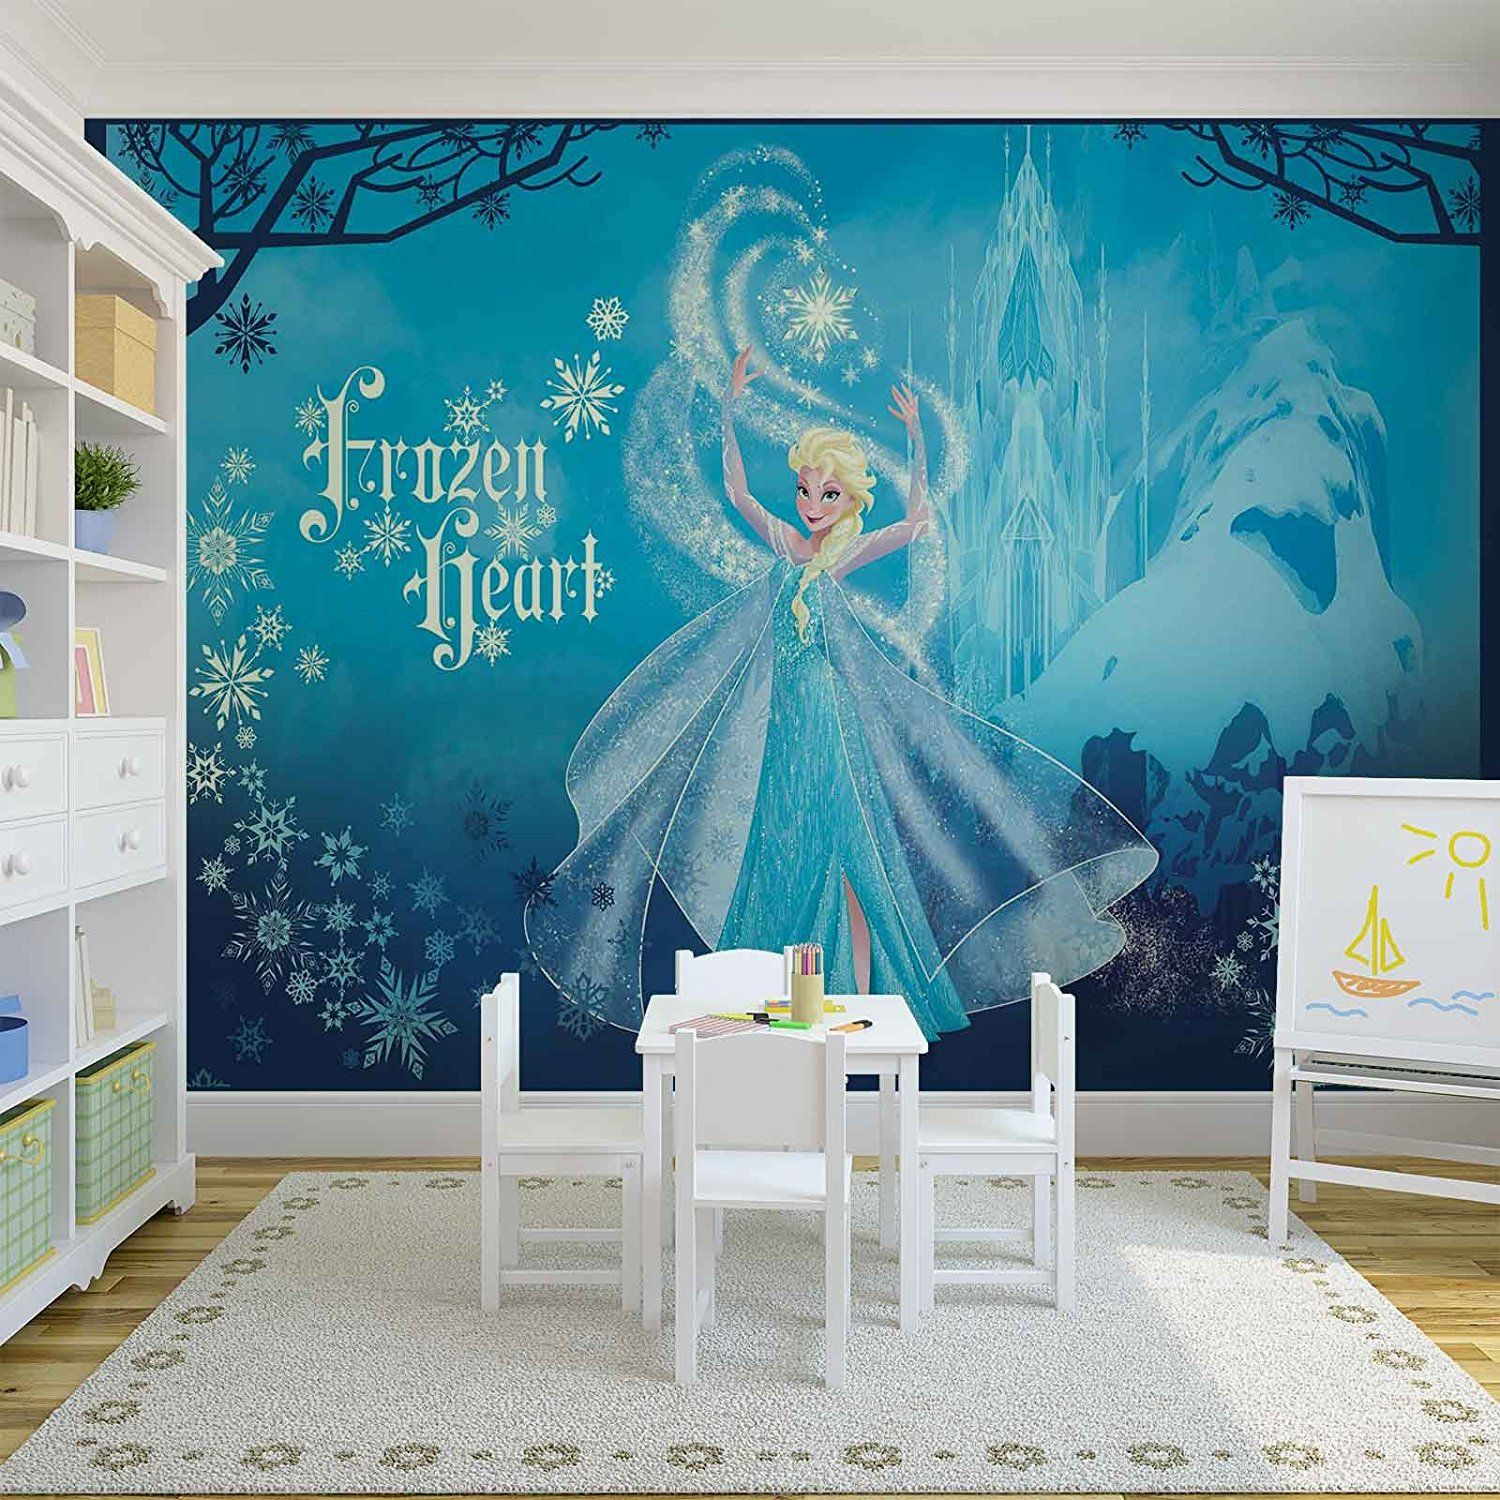 Fototapete Kinderzimmer Minnie Mouse Frozen Kinderzimmer Disney Frozen Eiskönigin Elsa